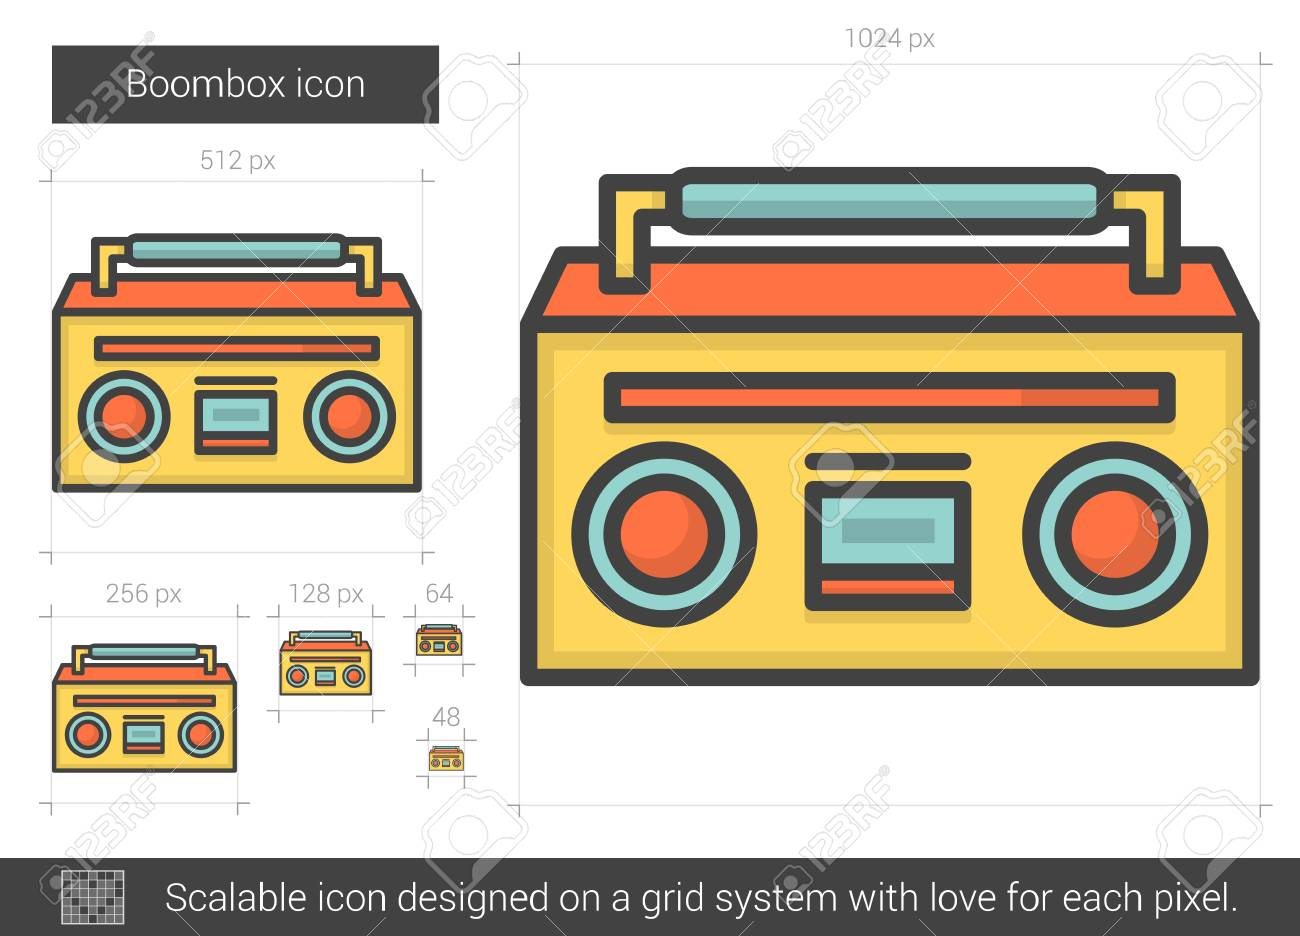 boombox vector line icon isolated on white background boombox rh 123rf com boombox vector png boombox vector free